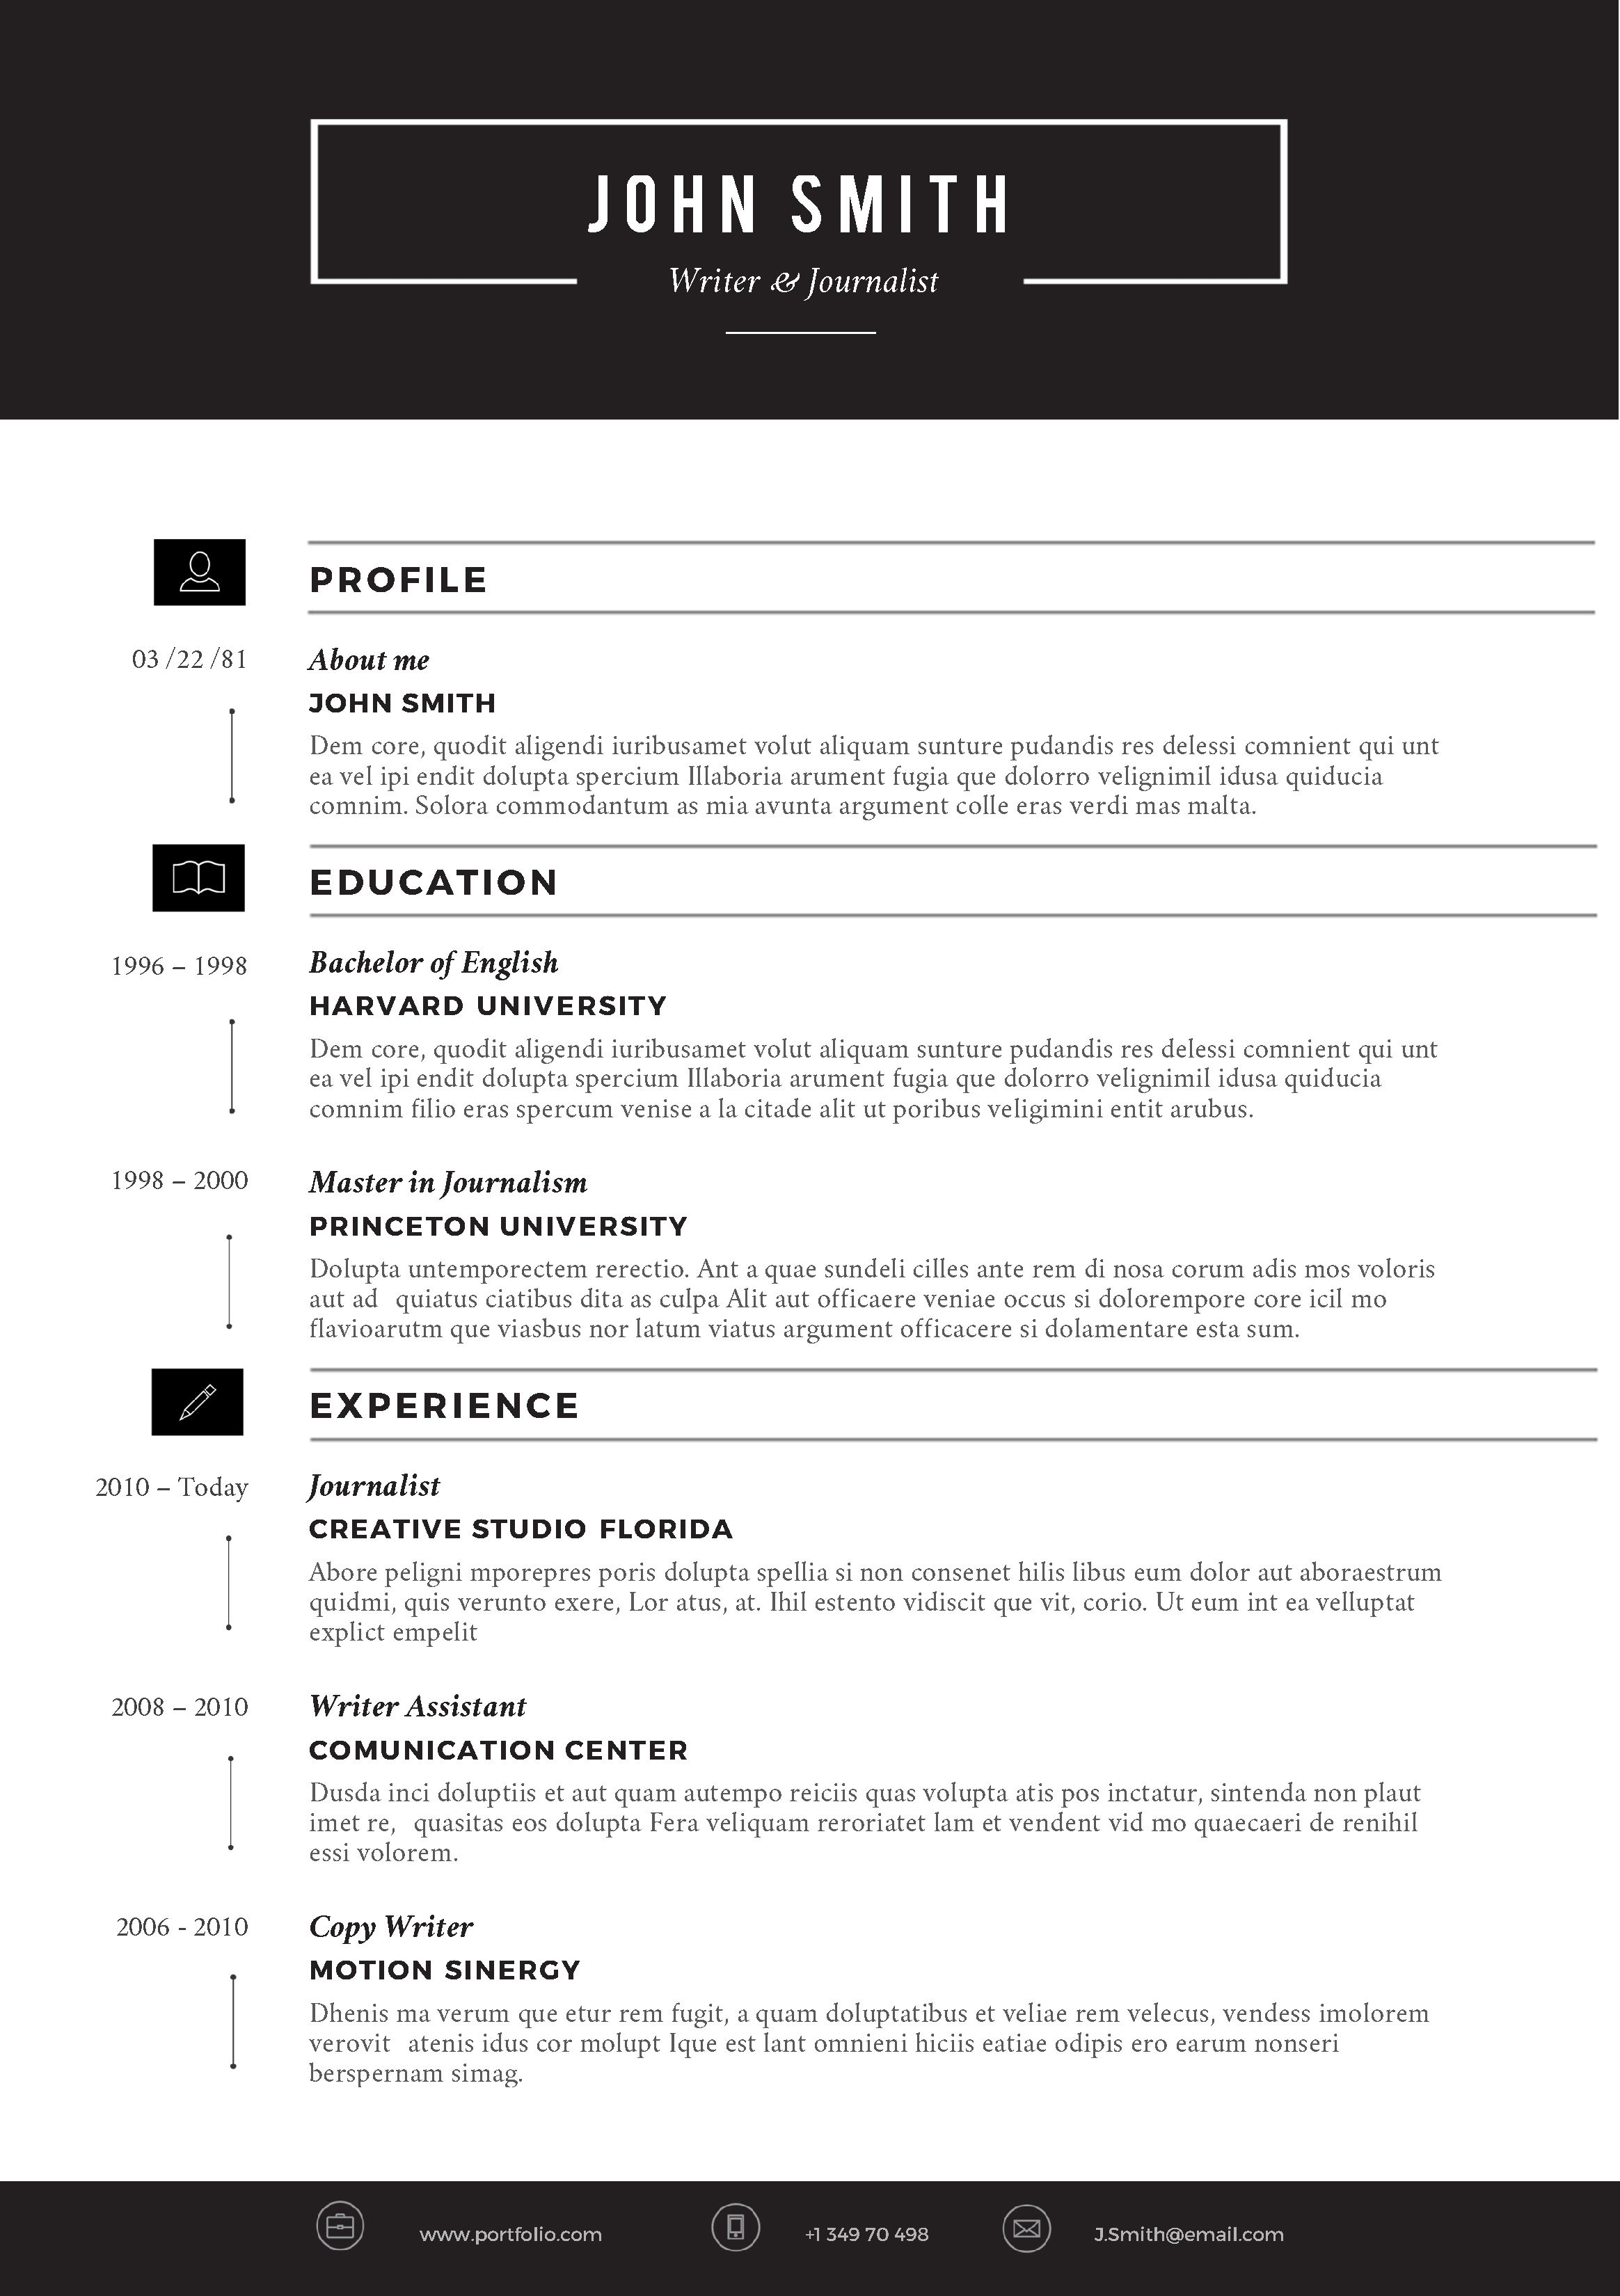 Microsoft Word Sleek Resume Template 1